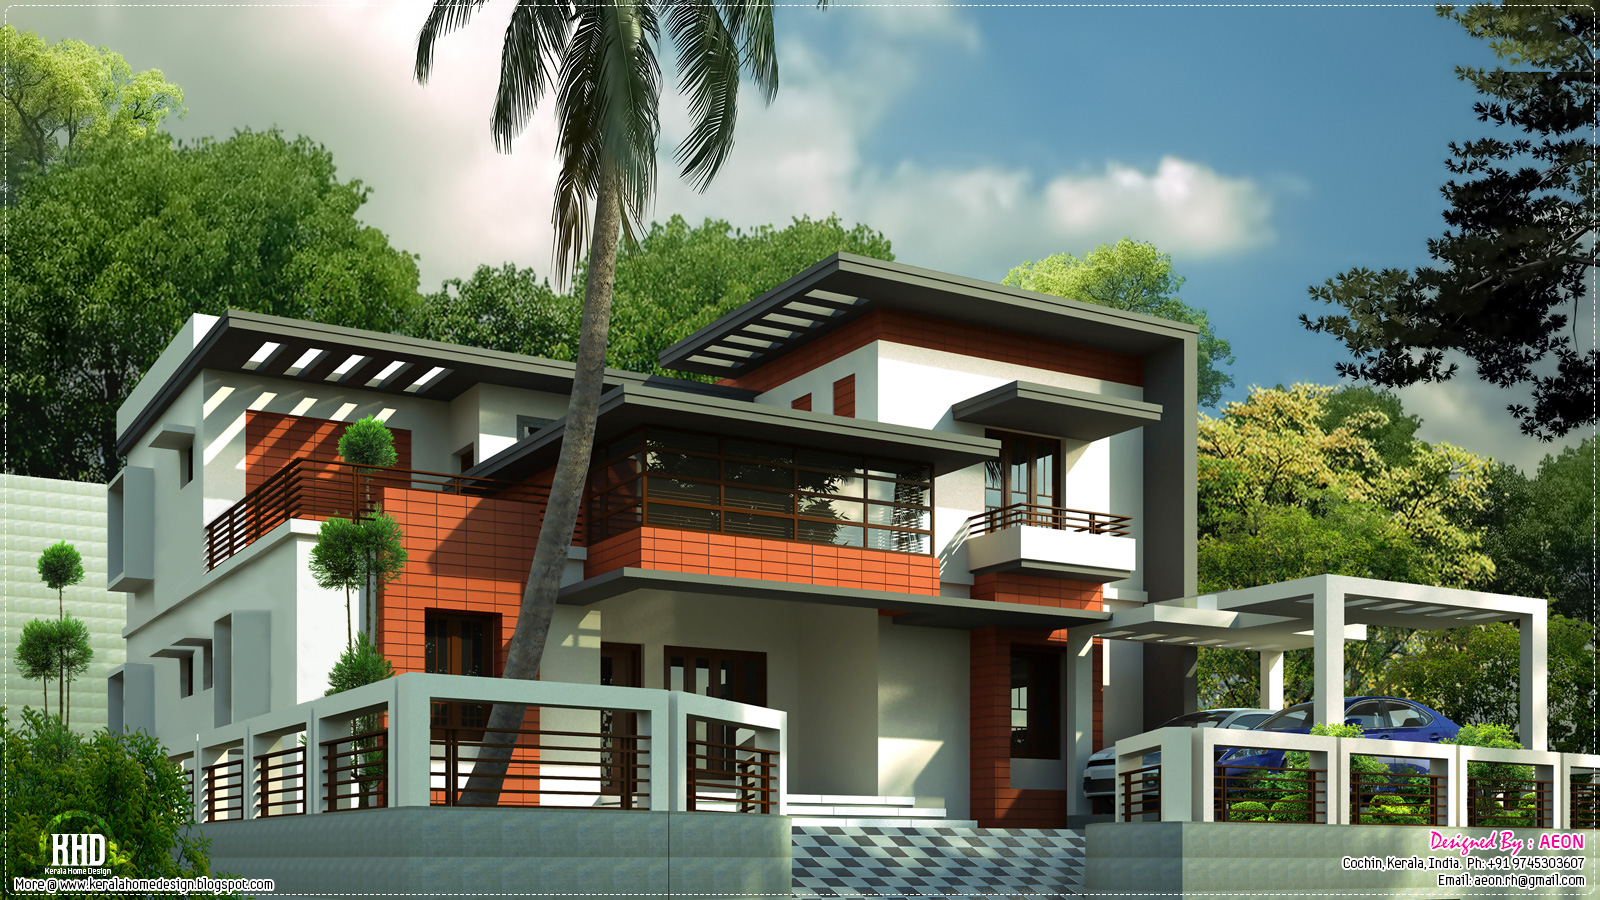 3400 sq feet contemporary home design kerala home for Small contemporary house plans in kerala